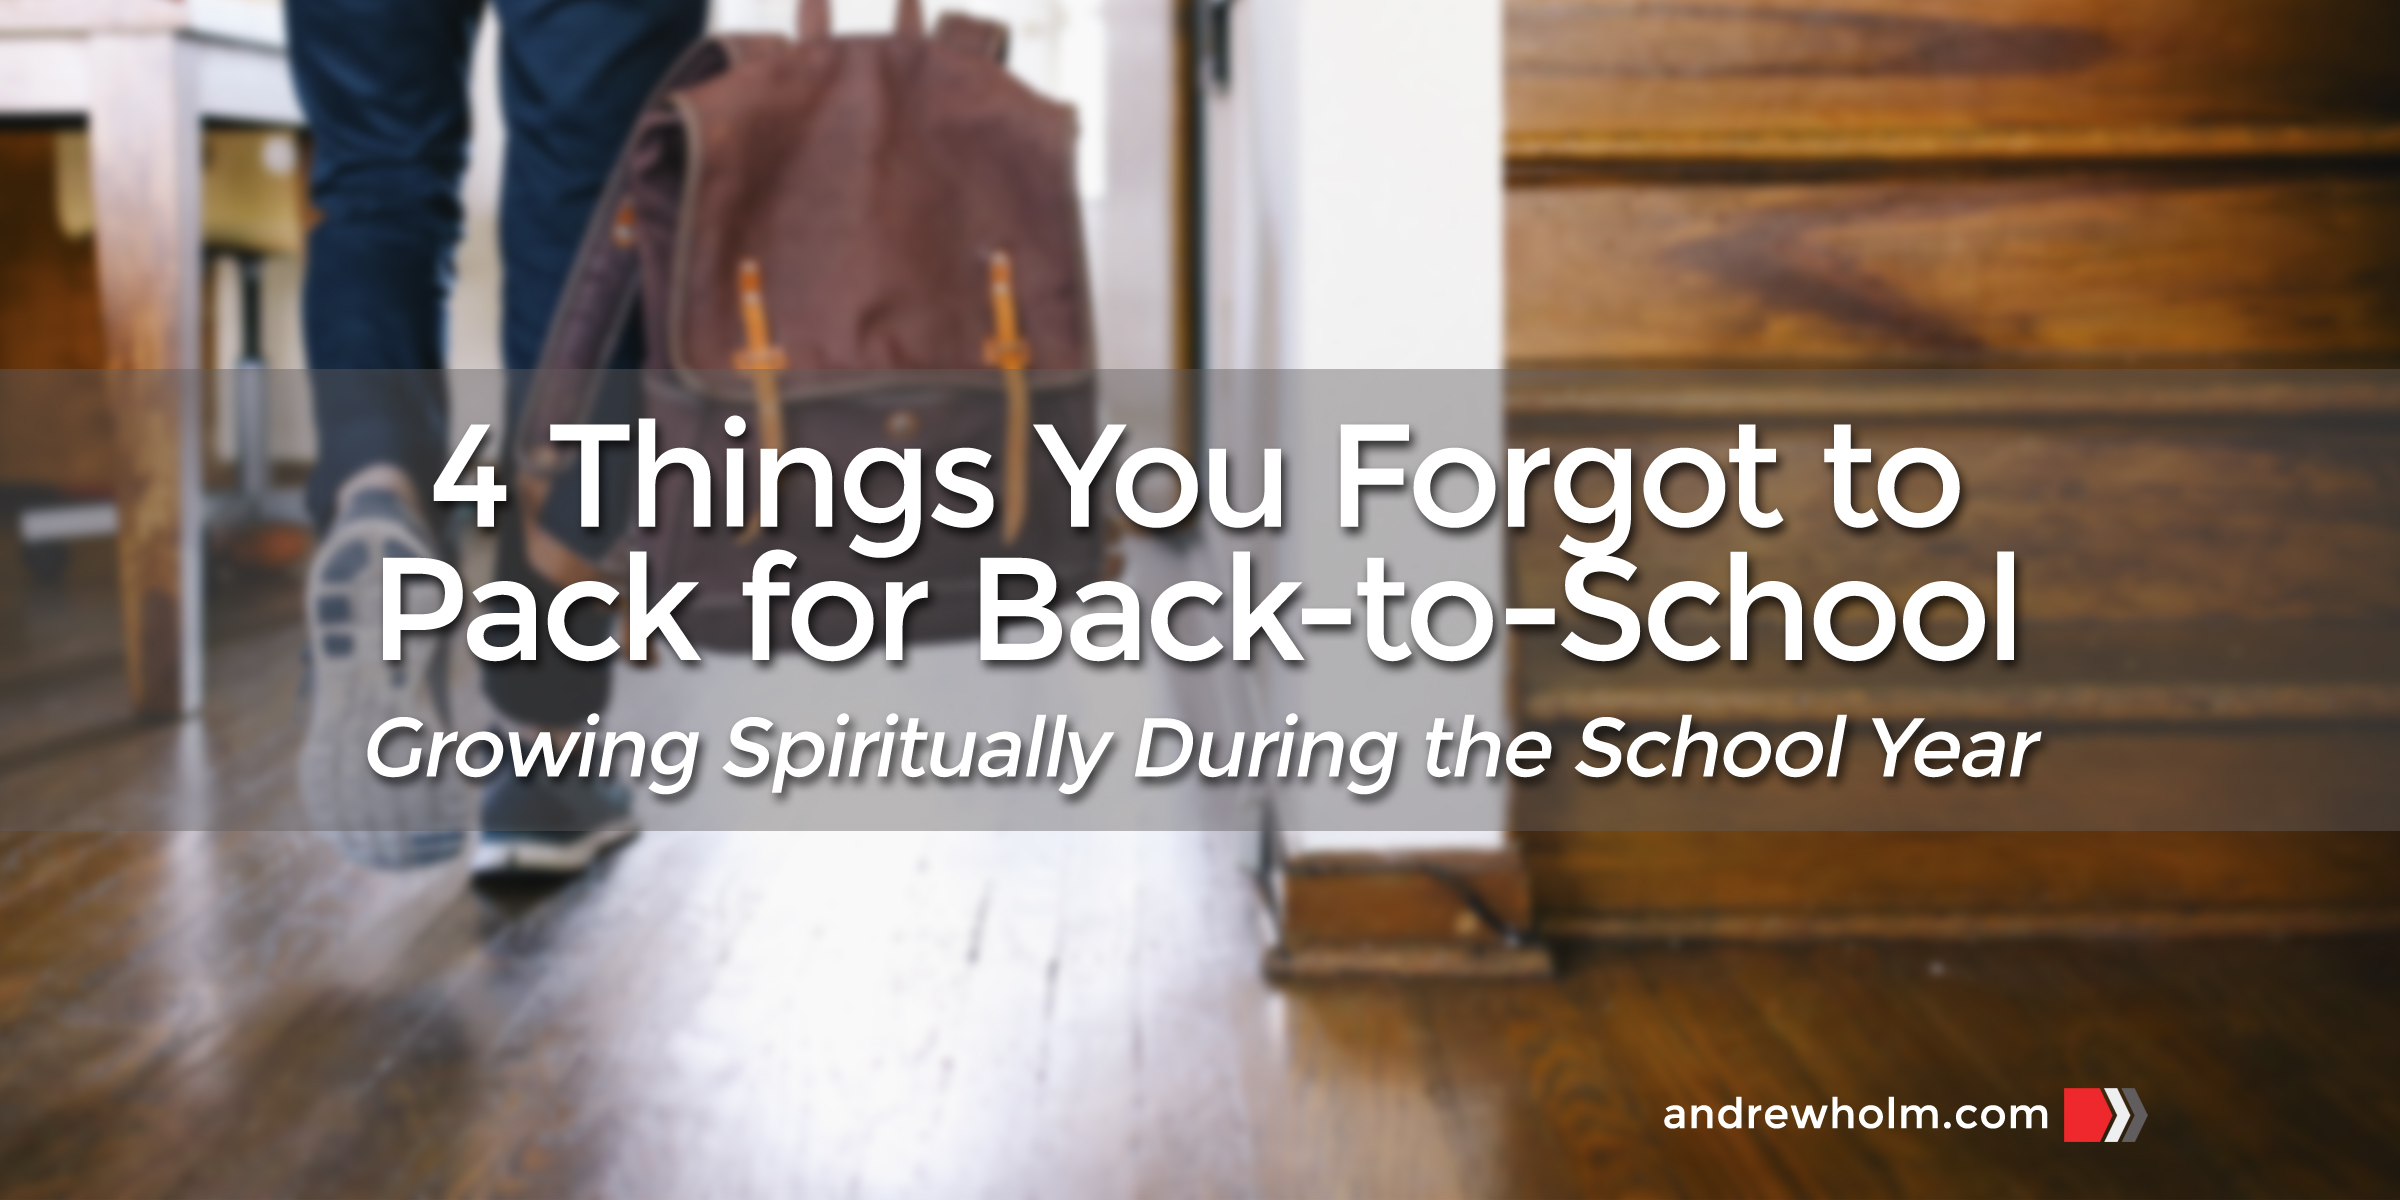 4 Things You Forgot To Pack for Back-to-School